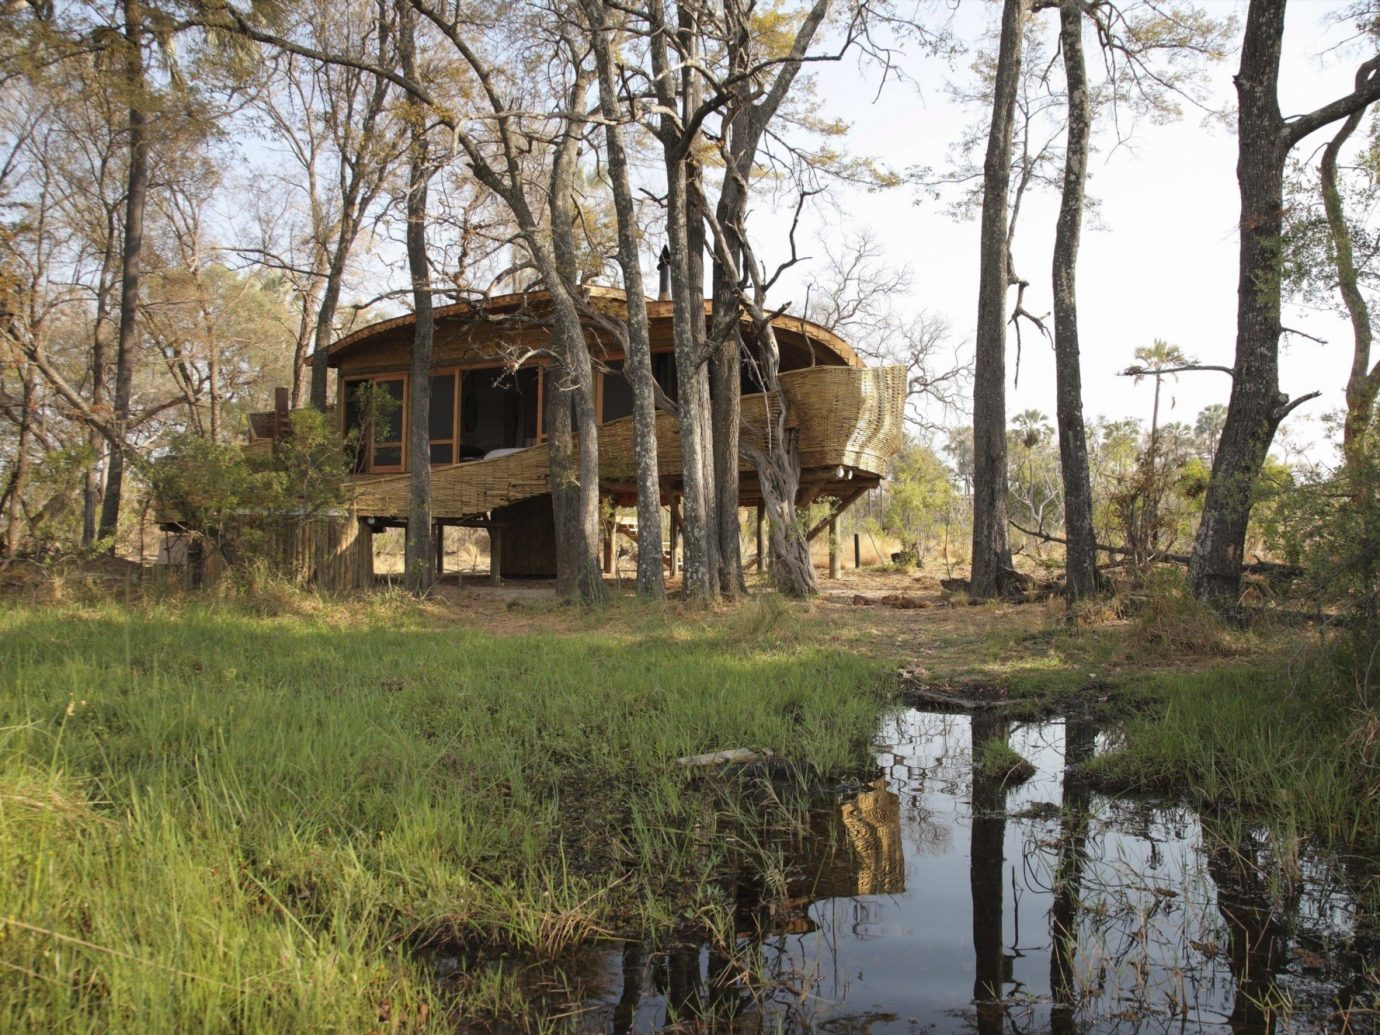 All-Inclusive Resorts Hotels Luxury Travel tree grass outdoor nature reserve standing hut house Safari bayou cottage wetland outdoor structure shack Wildlife area